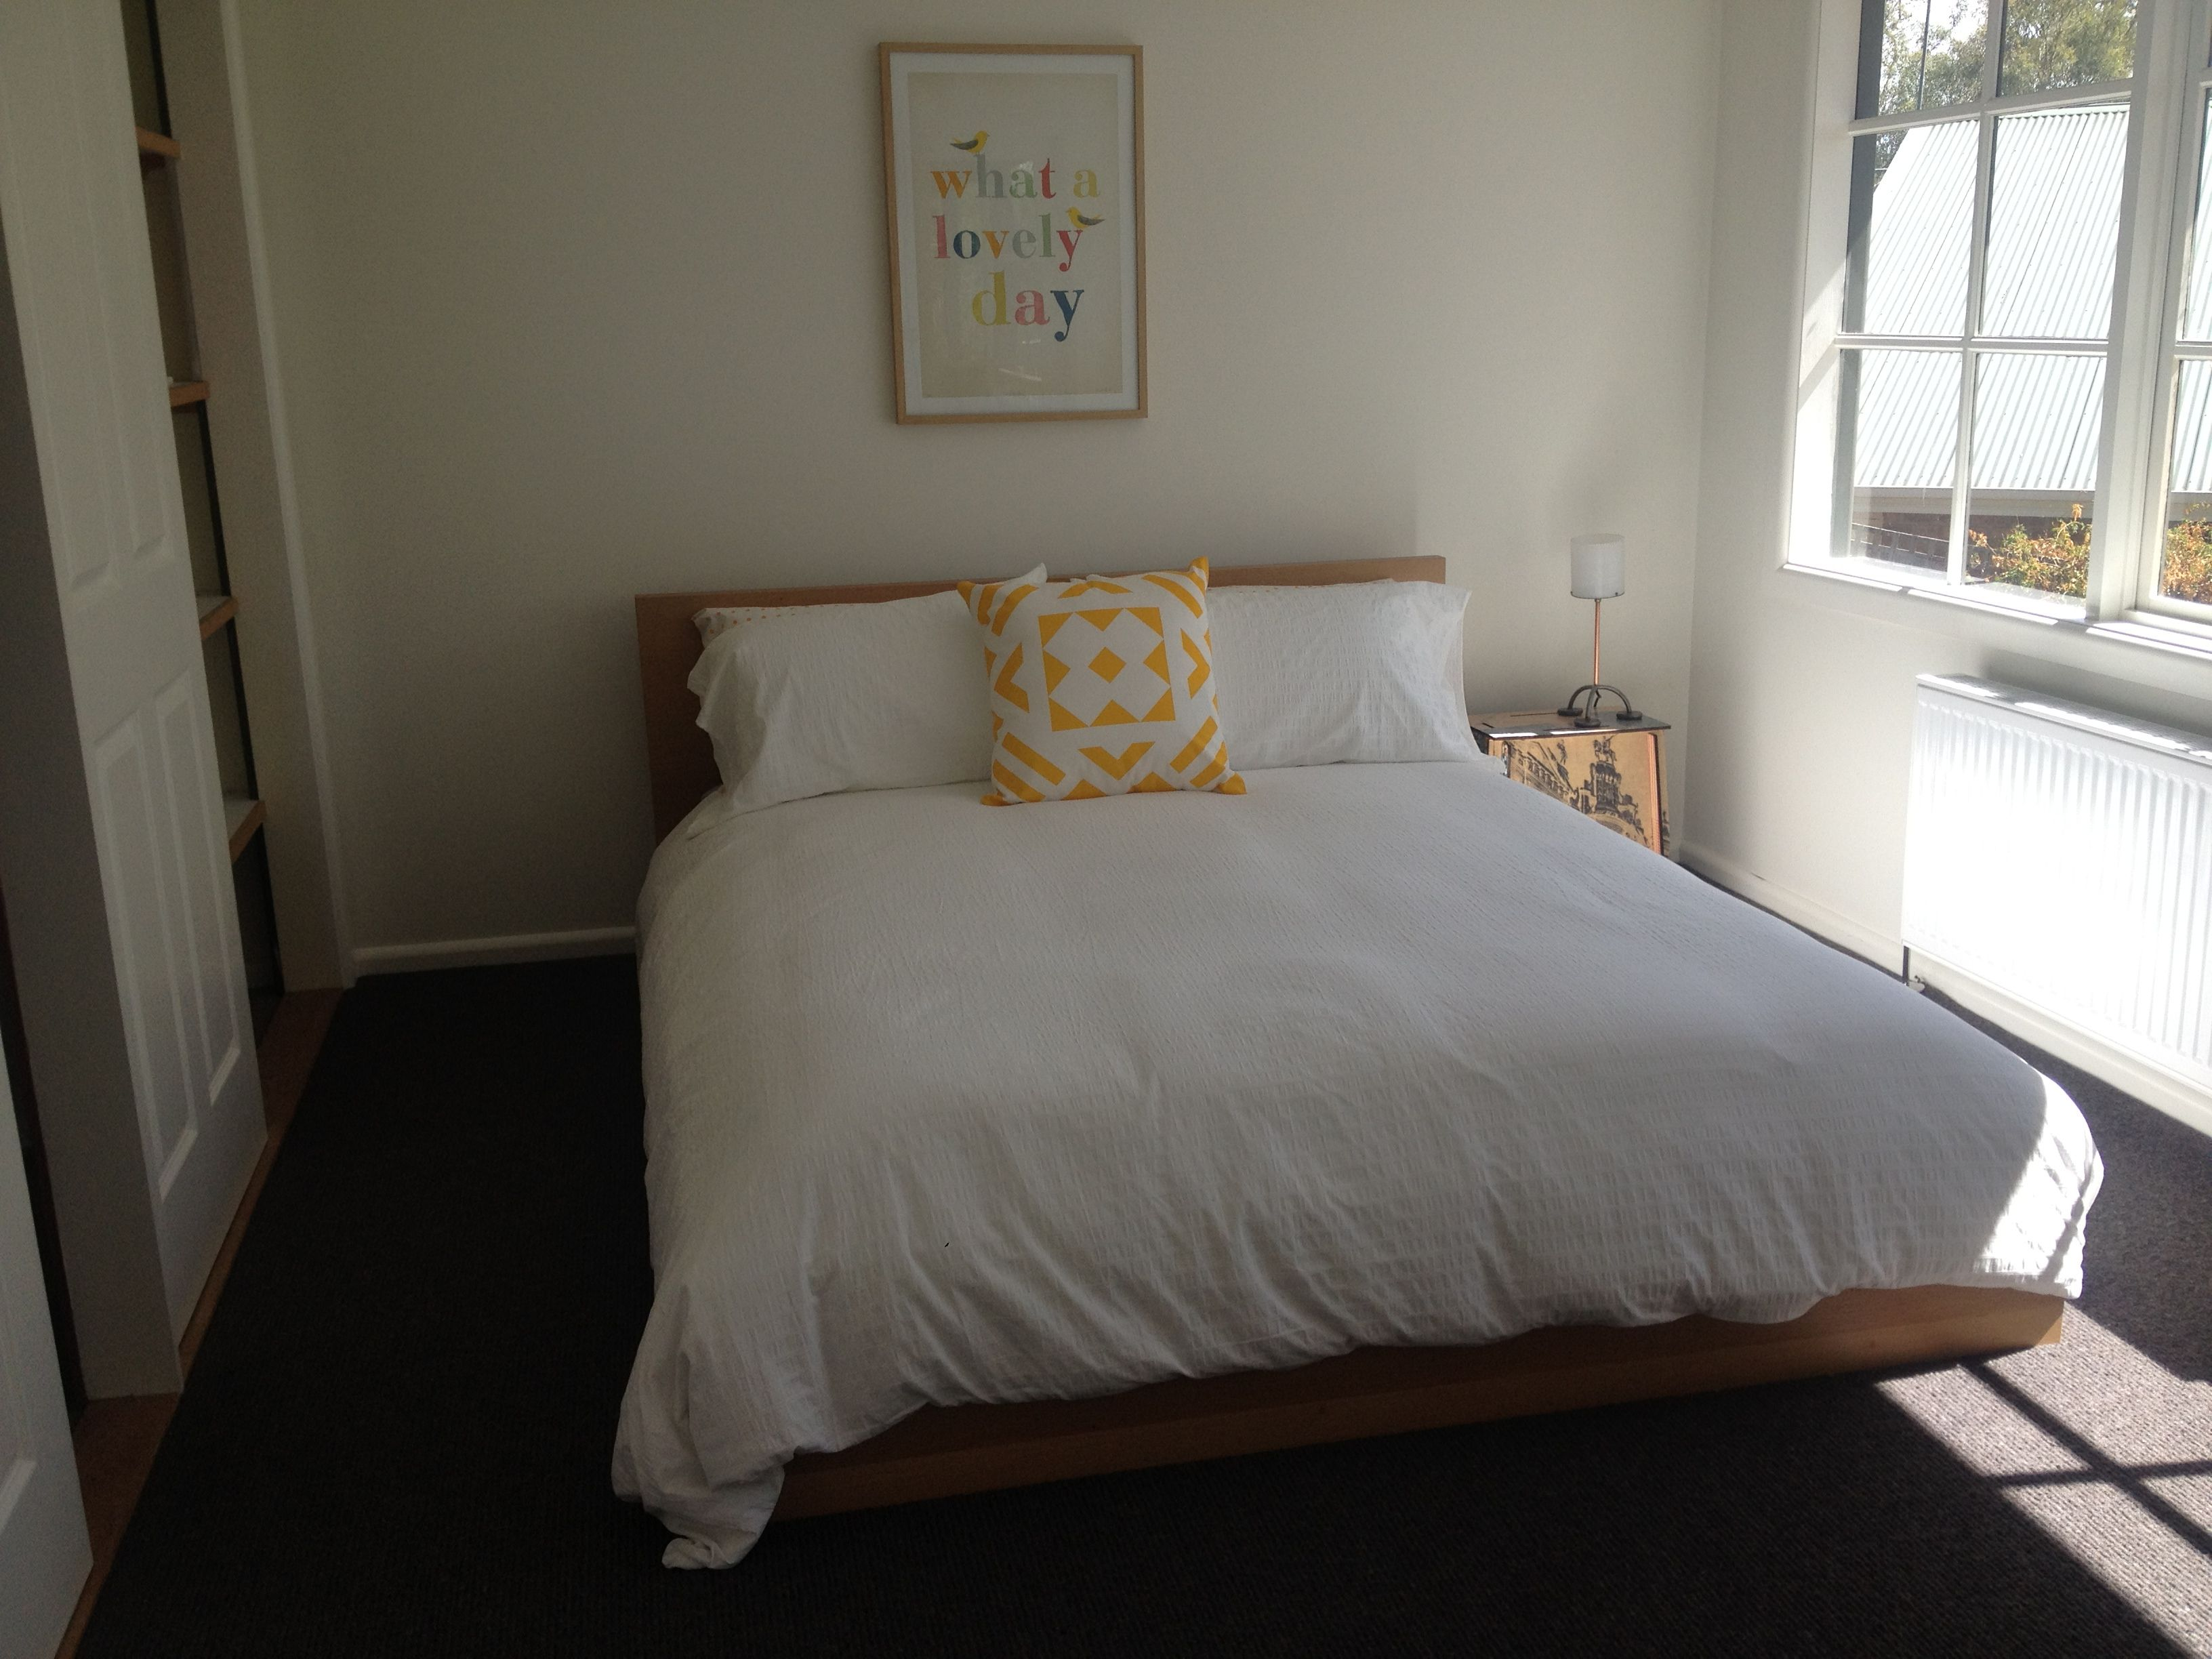 Charcoal dark grey carpet in bedroom with pop of colour yellow